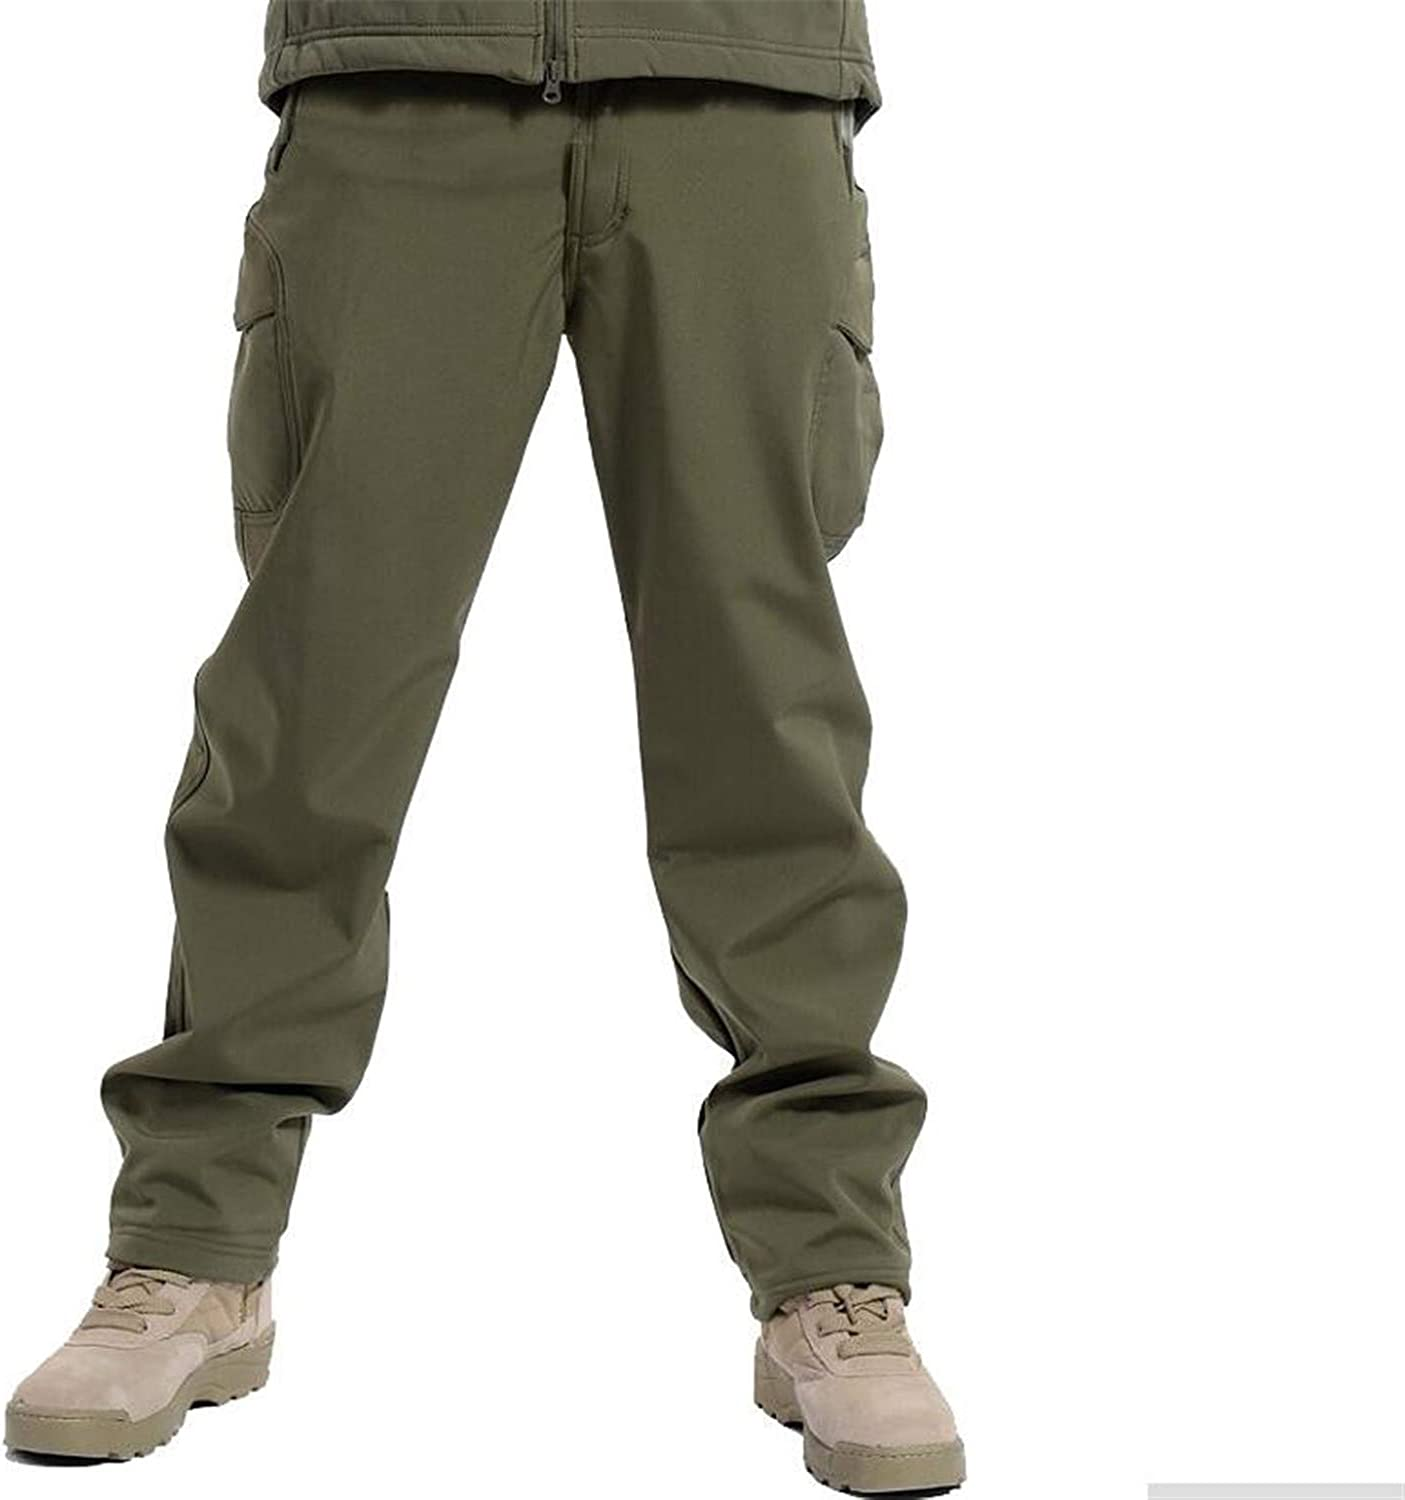 Cyose Style Winter Tactical Military Camouflage Pants Men Windproof Waterproof Camo Army Fleece Pants